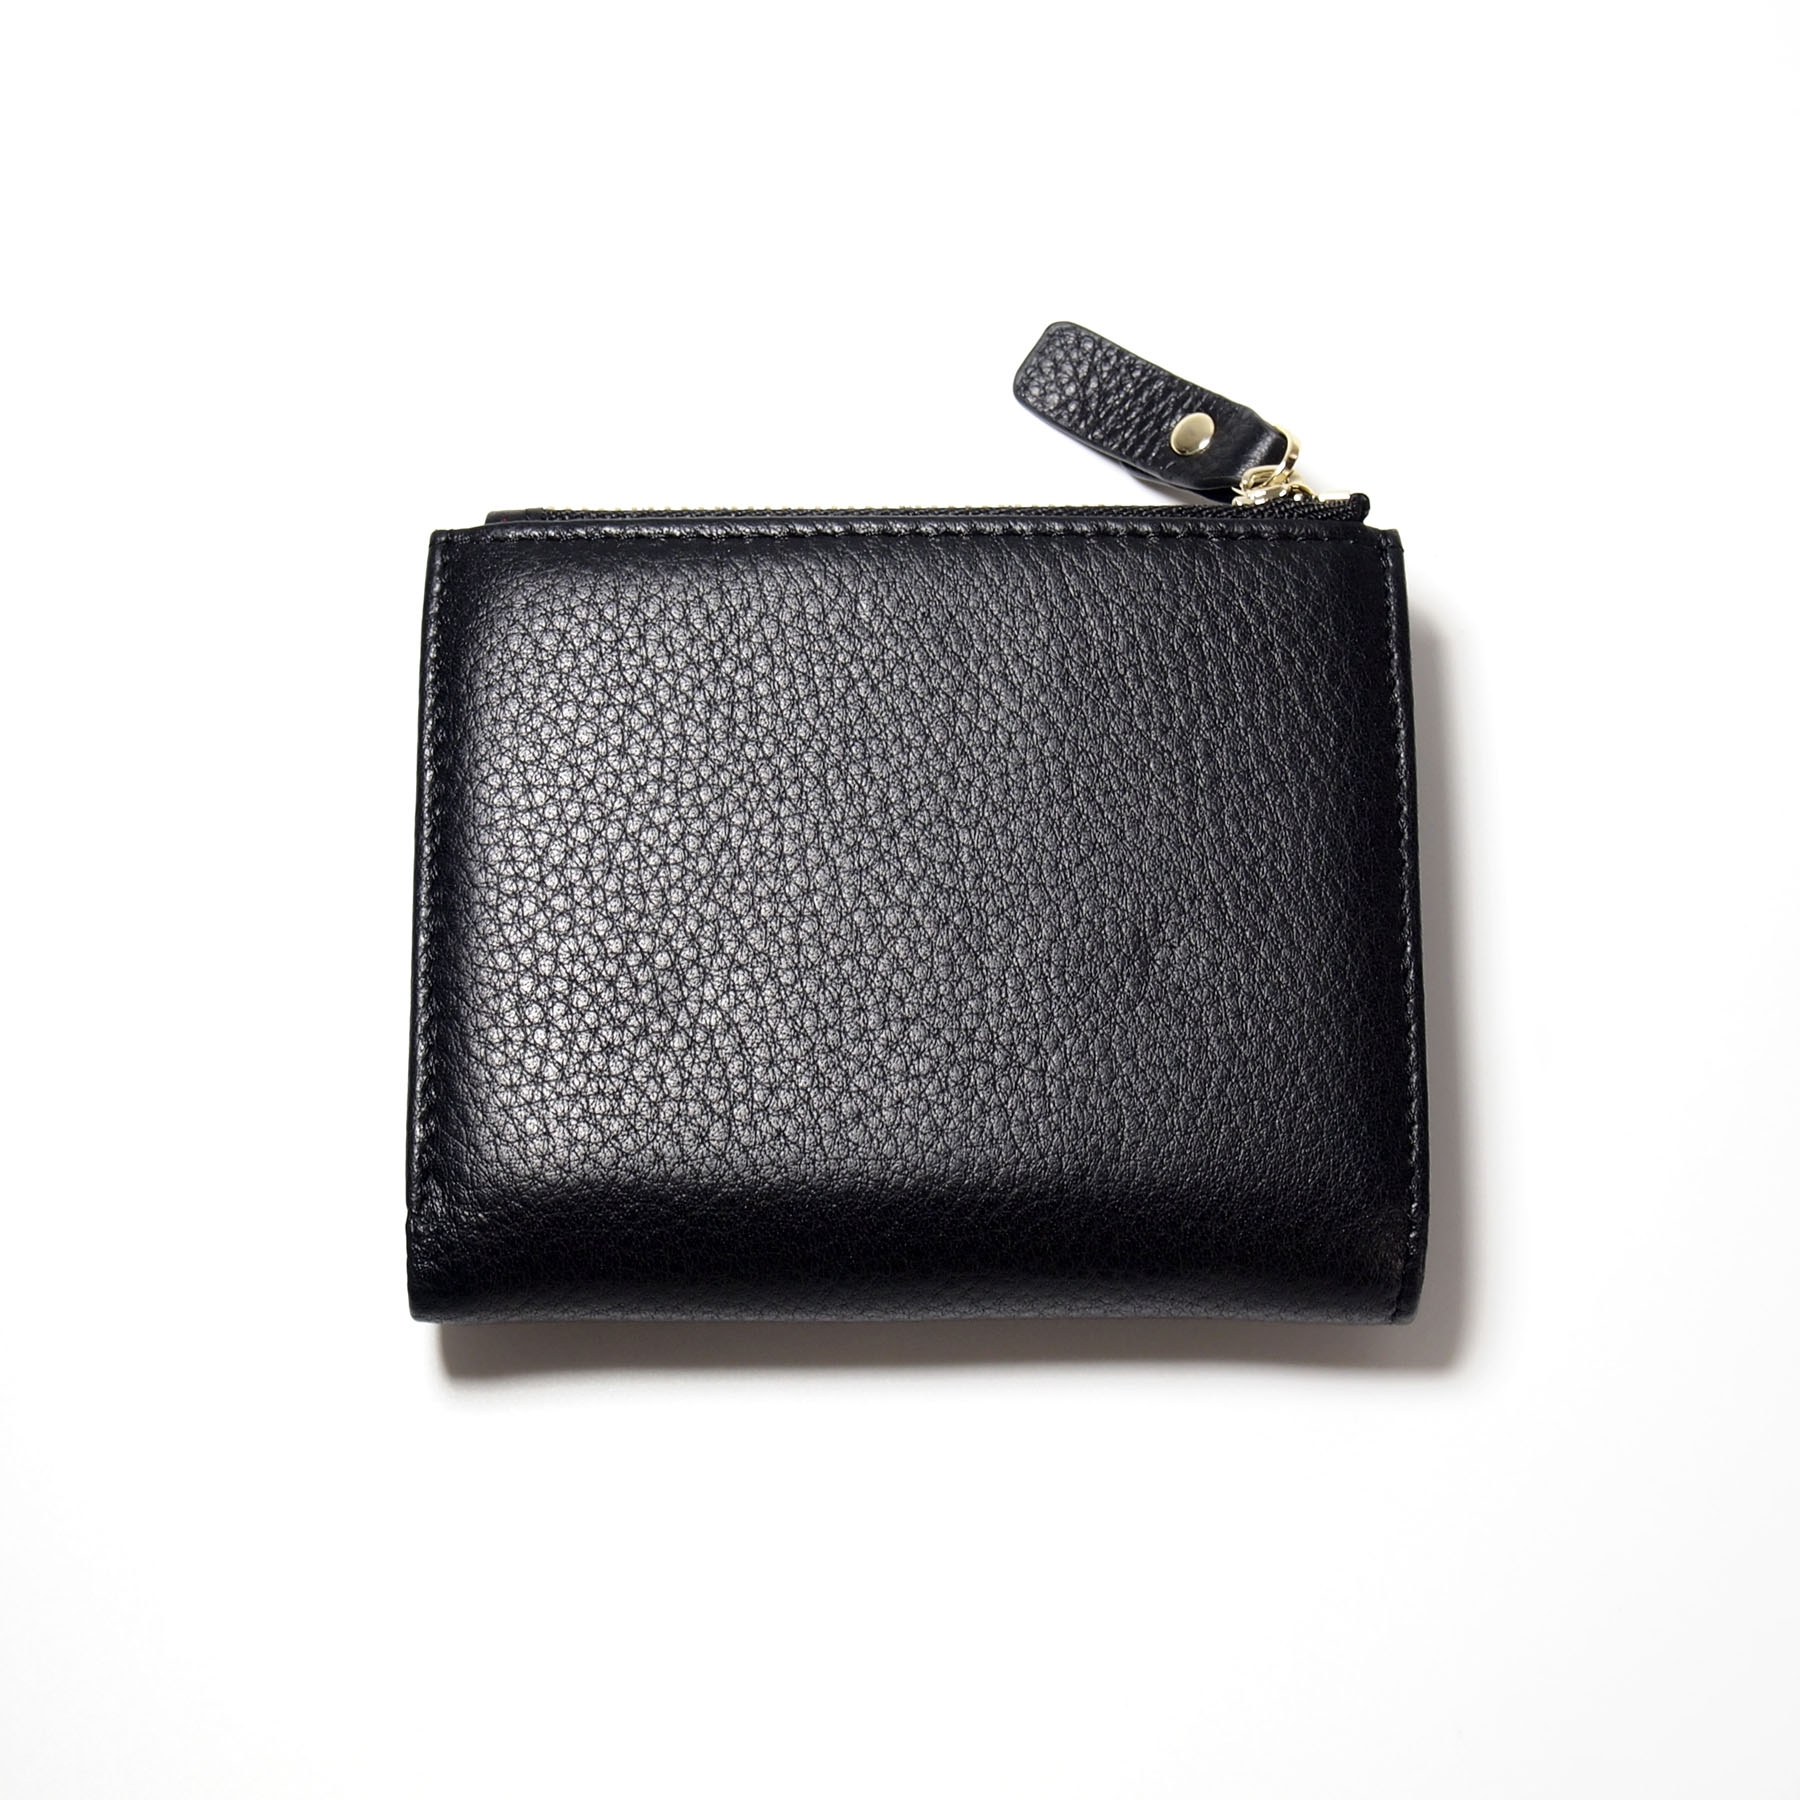 Butterfield Rumi Wallet Front View